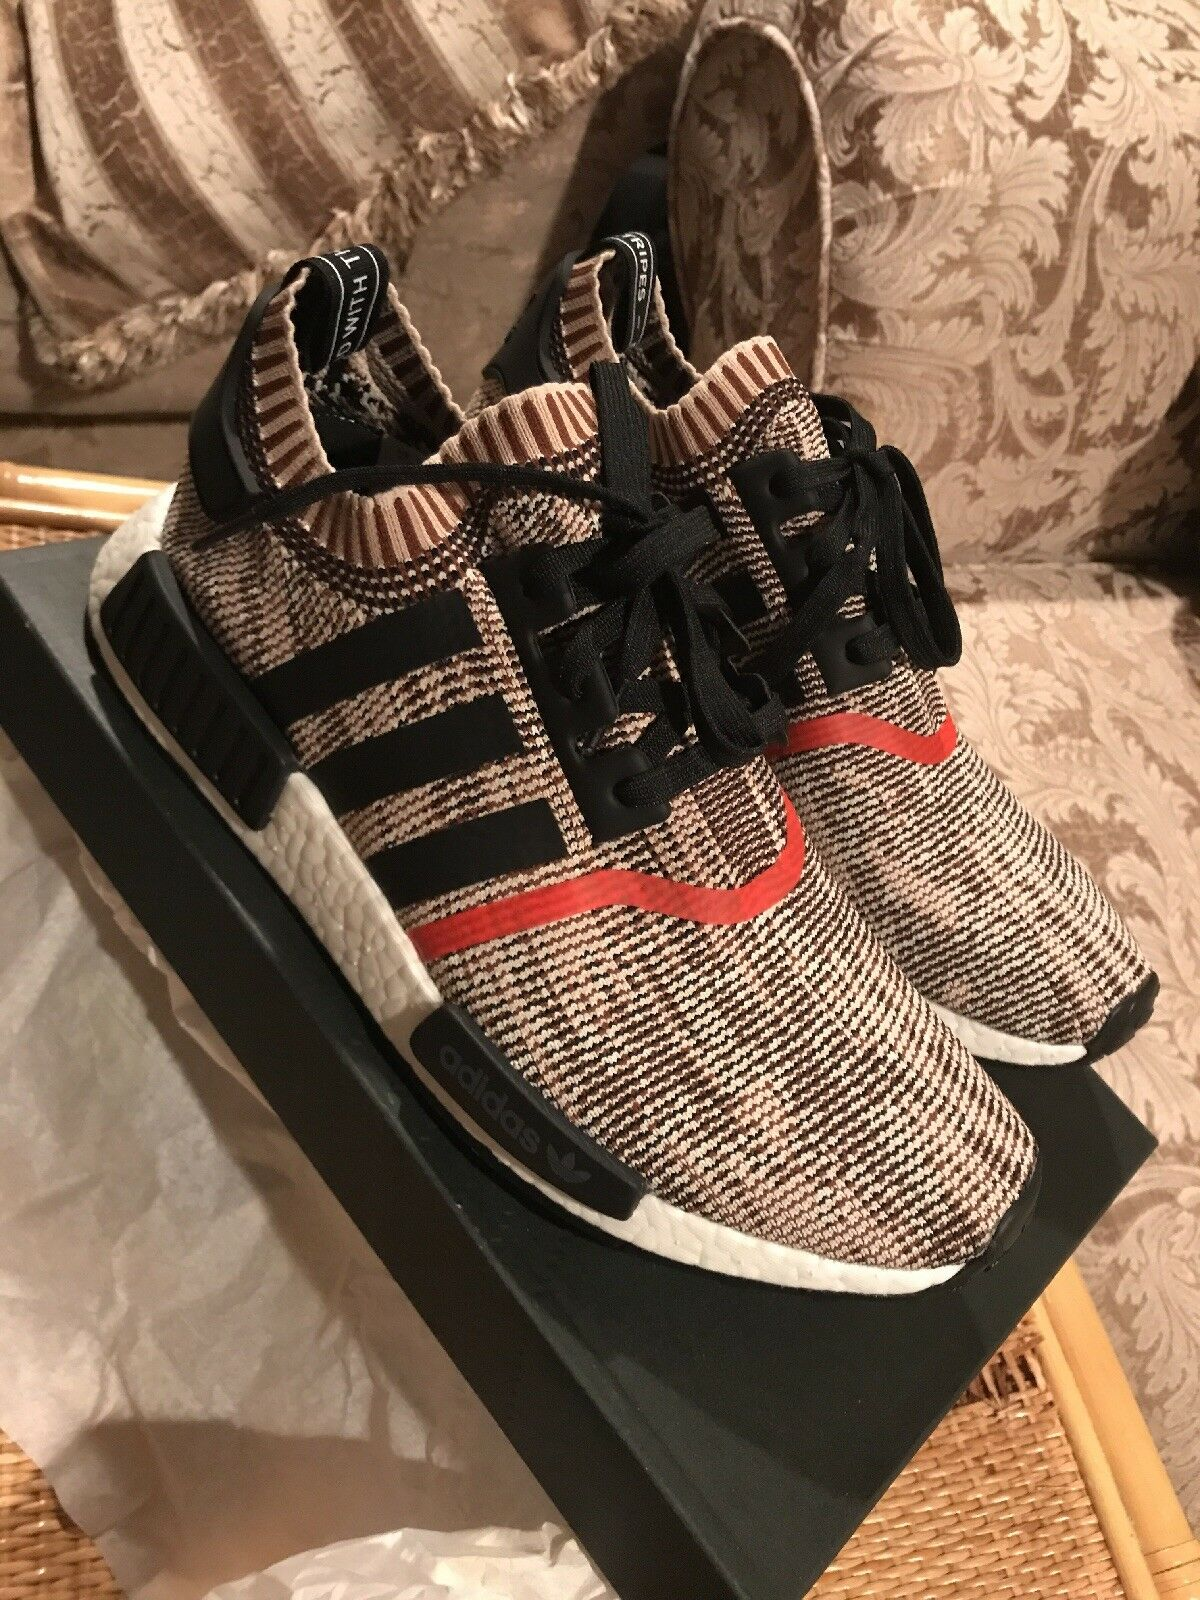 Adidas NMD_R1 Talc/Black AI Camo size 10 US Exclusive1/900 Pairs Very Limited